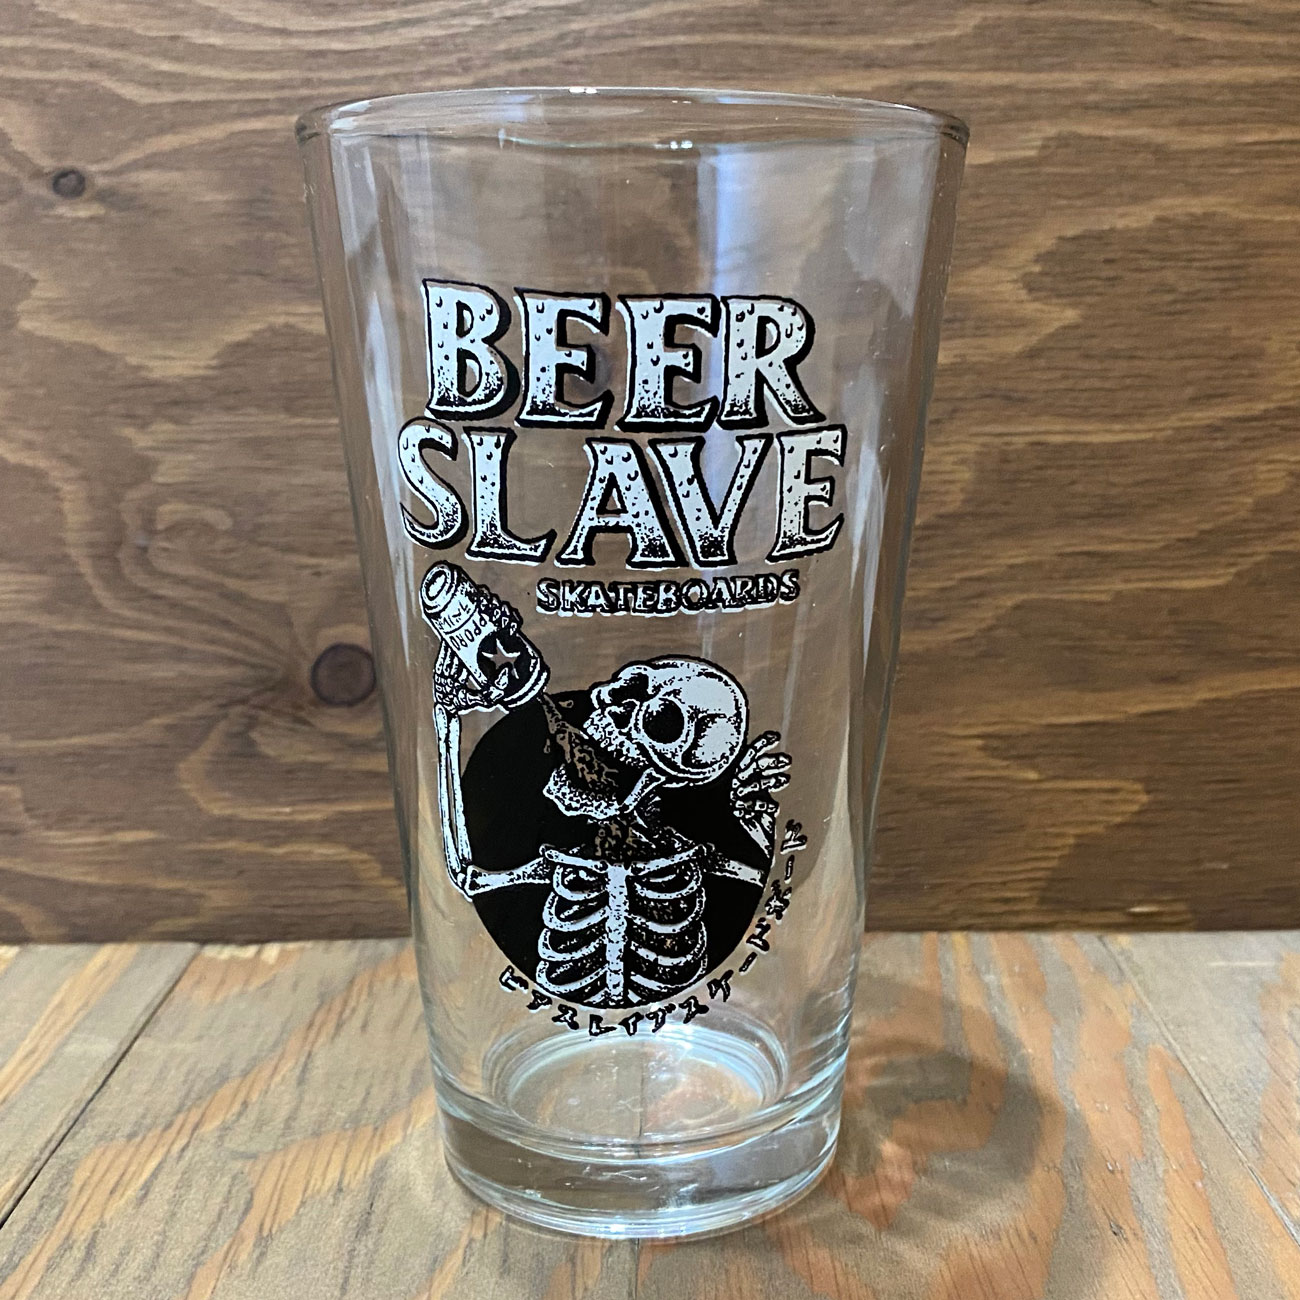 BEER SLAVE パイントグラス